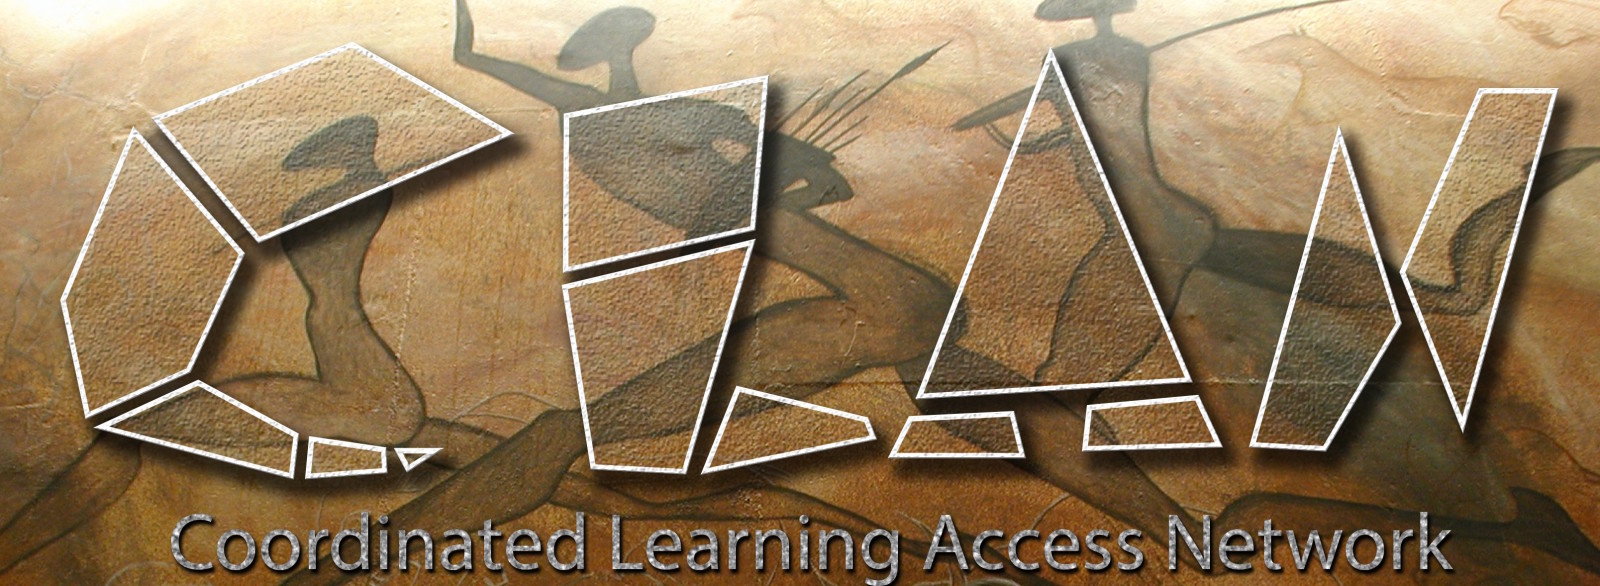 Northwestern Coordinated Learning Access Network (CLAN)